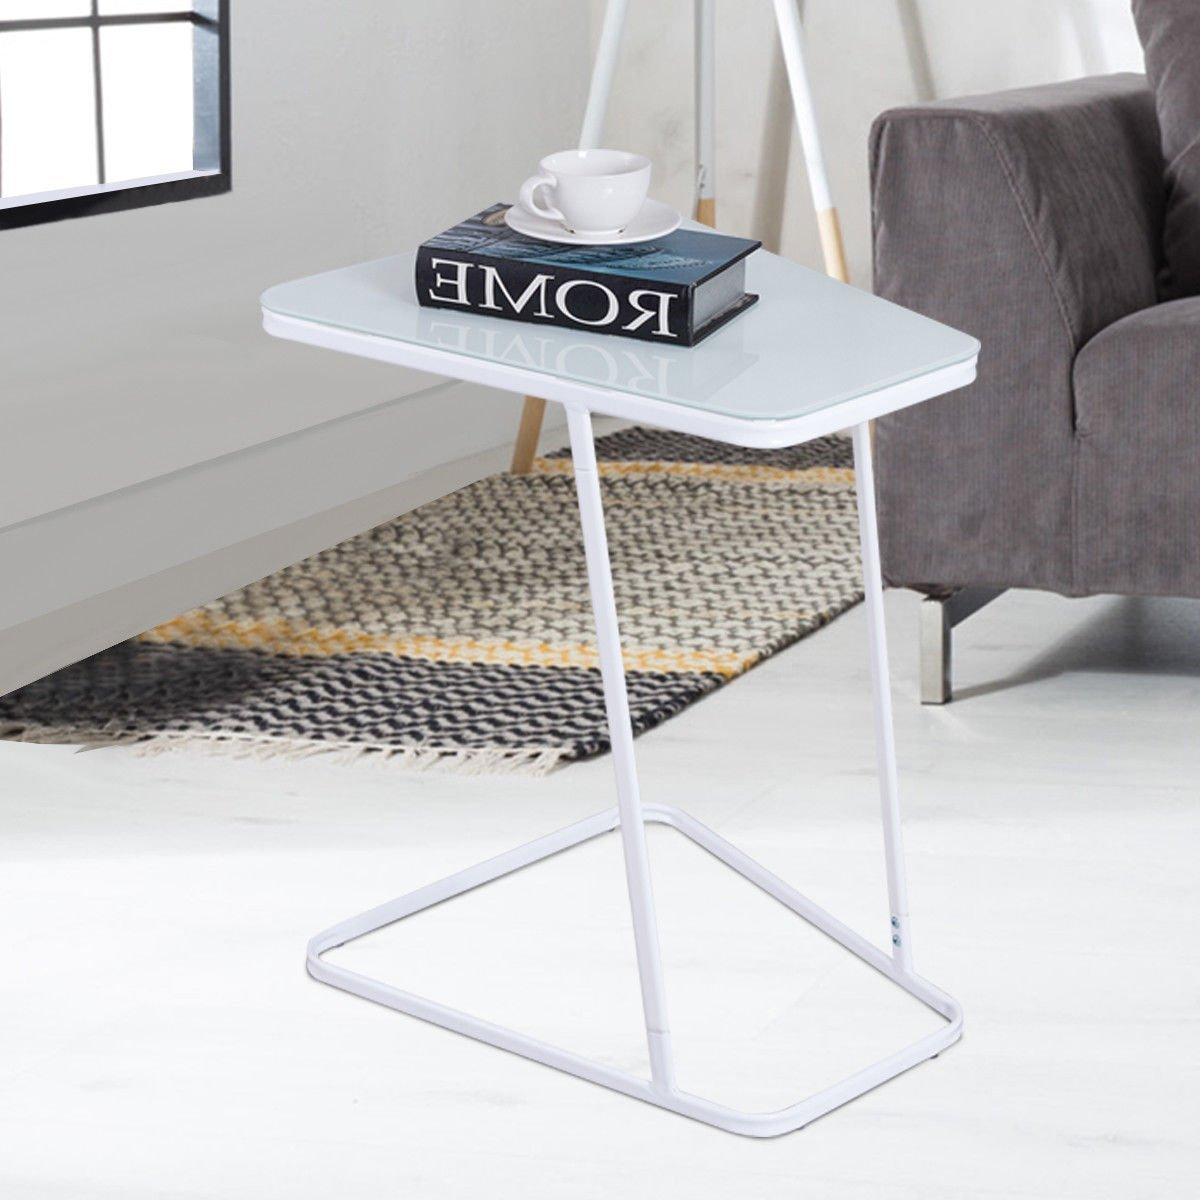 Tangkula Snack Table Home Glass Top Metal Frame Sofa Side End Table C Shaped Table 1, White